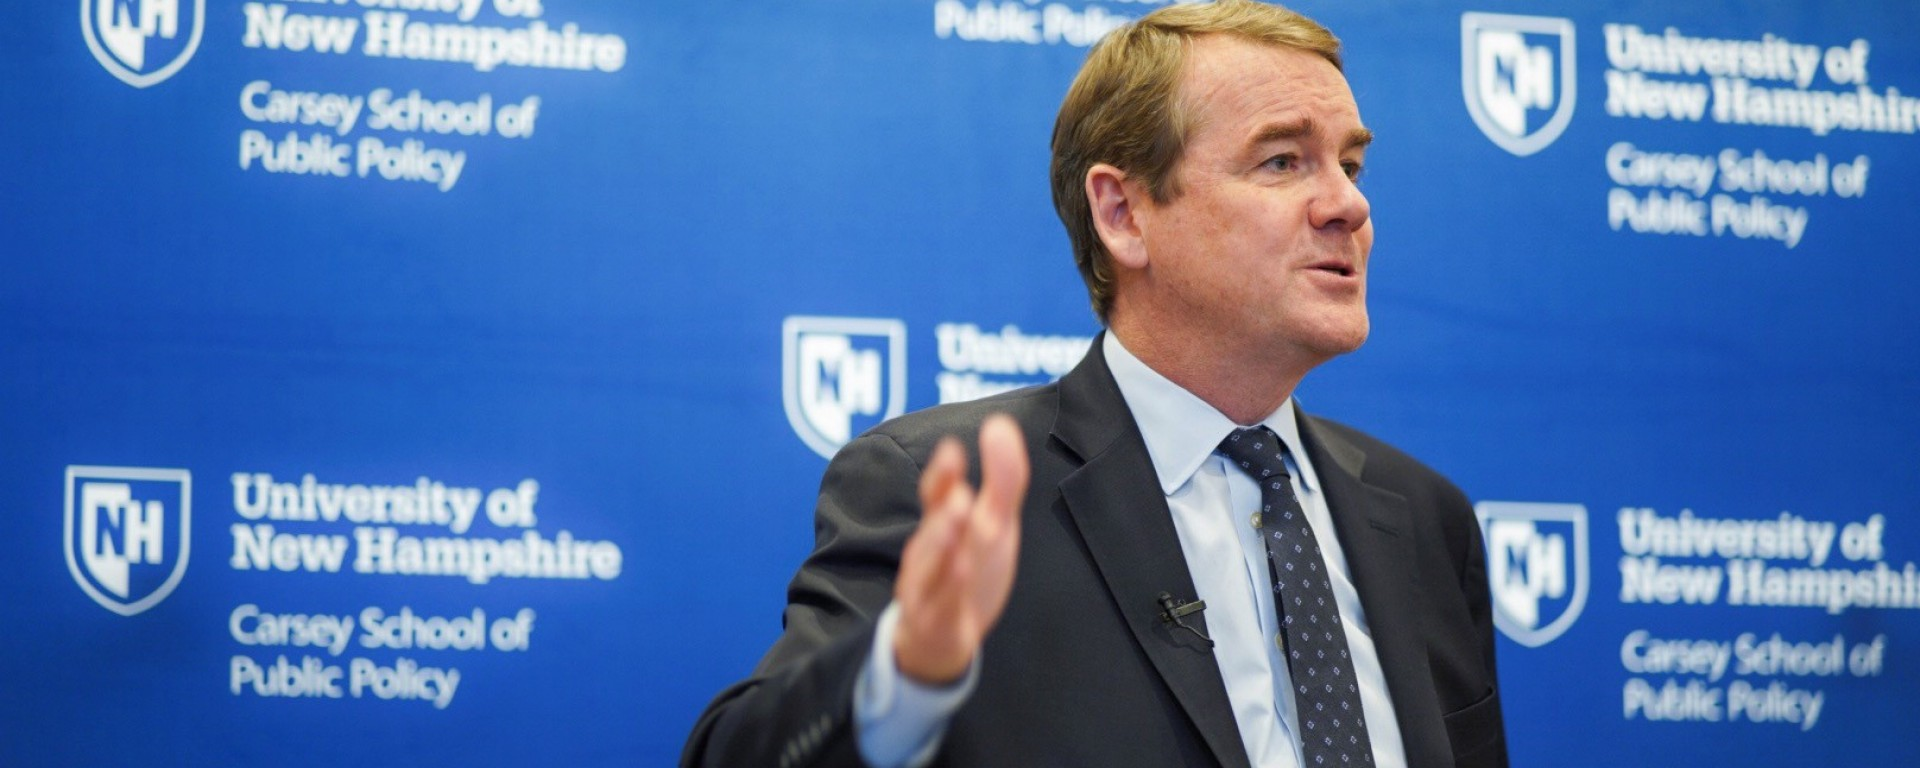 Presidential candidate Michael Bennet appearing at a Carsey School event.